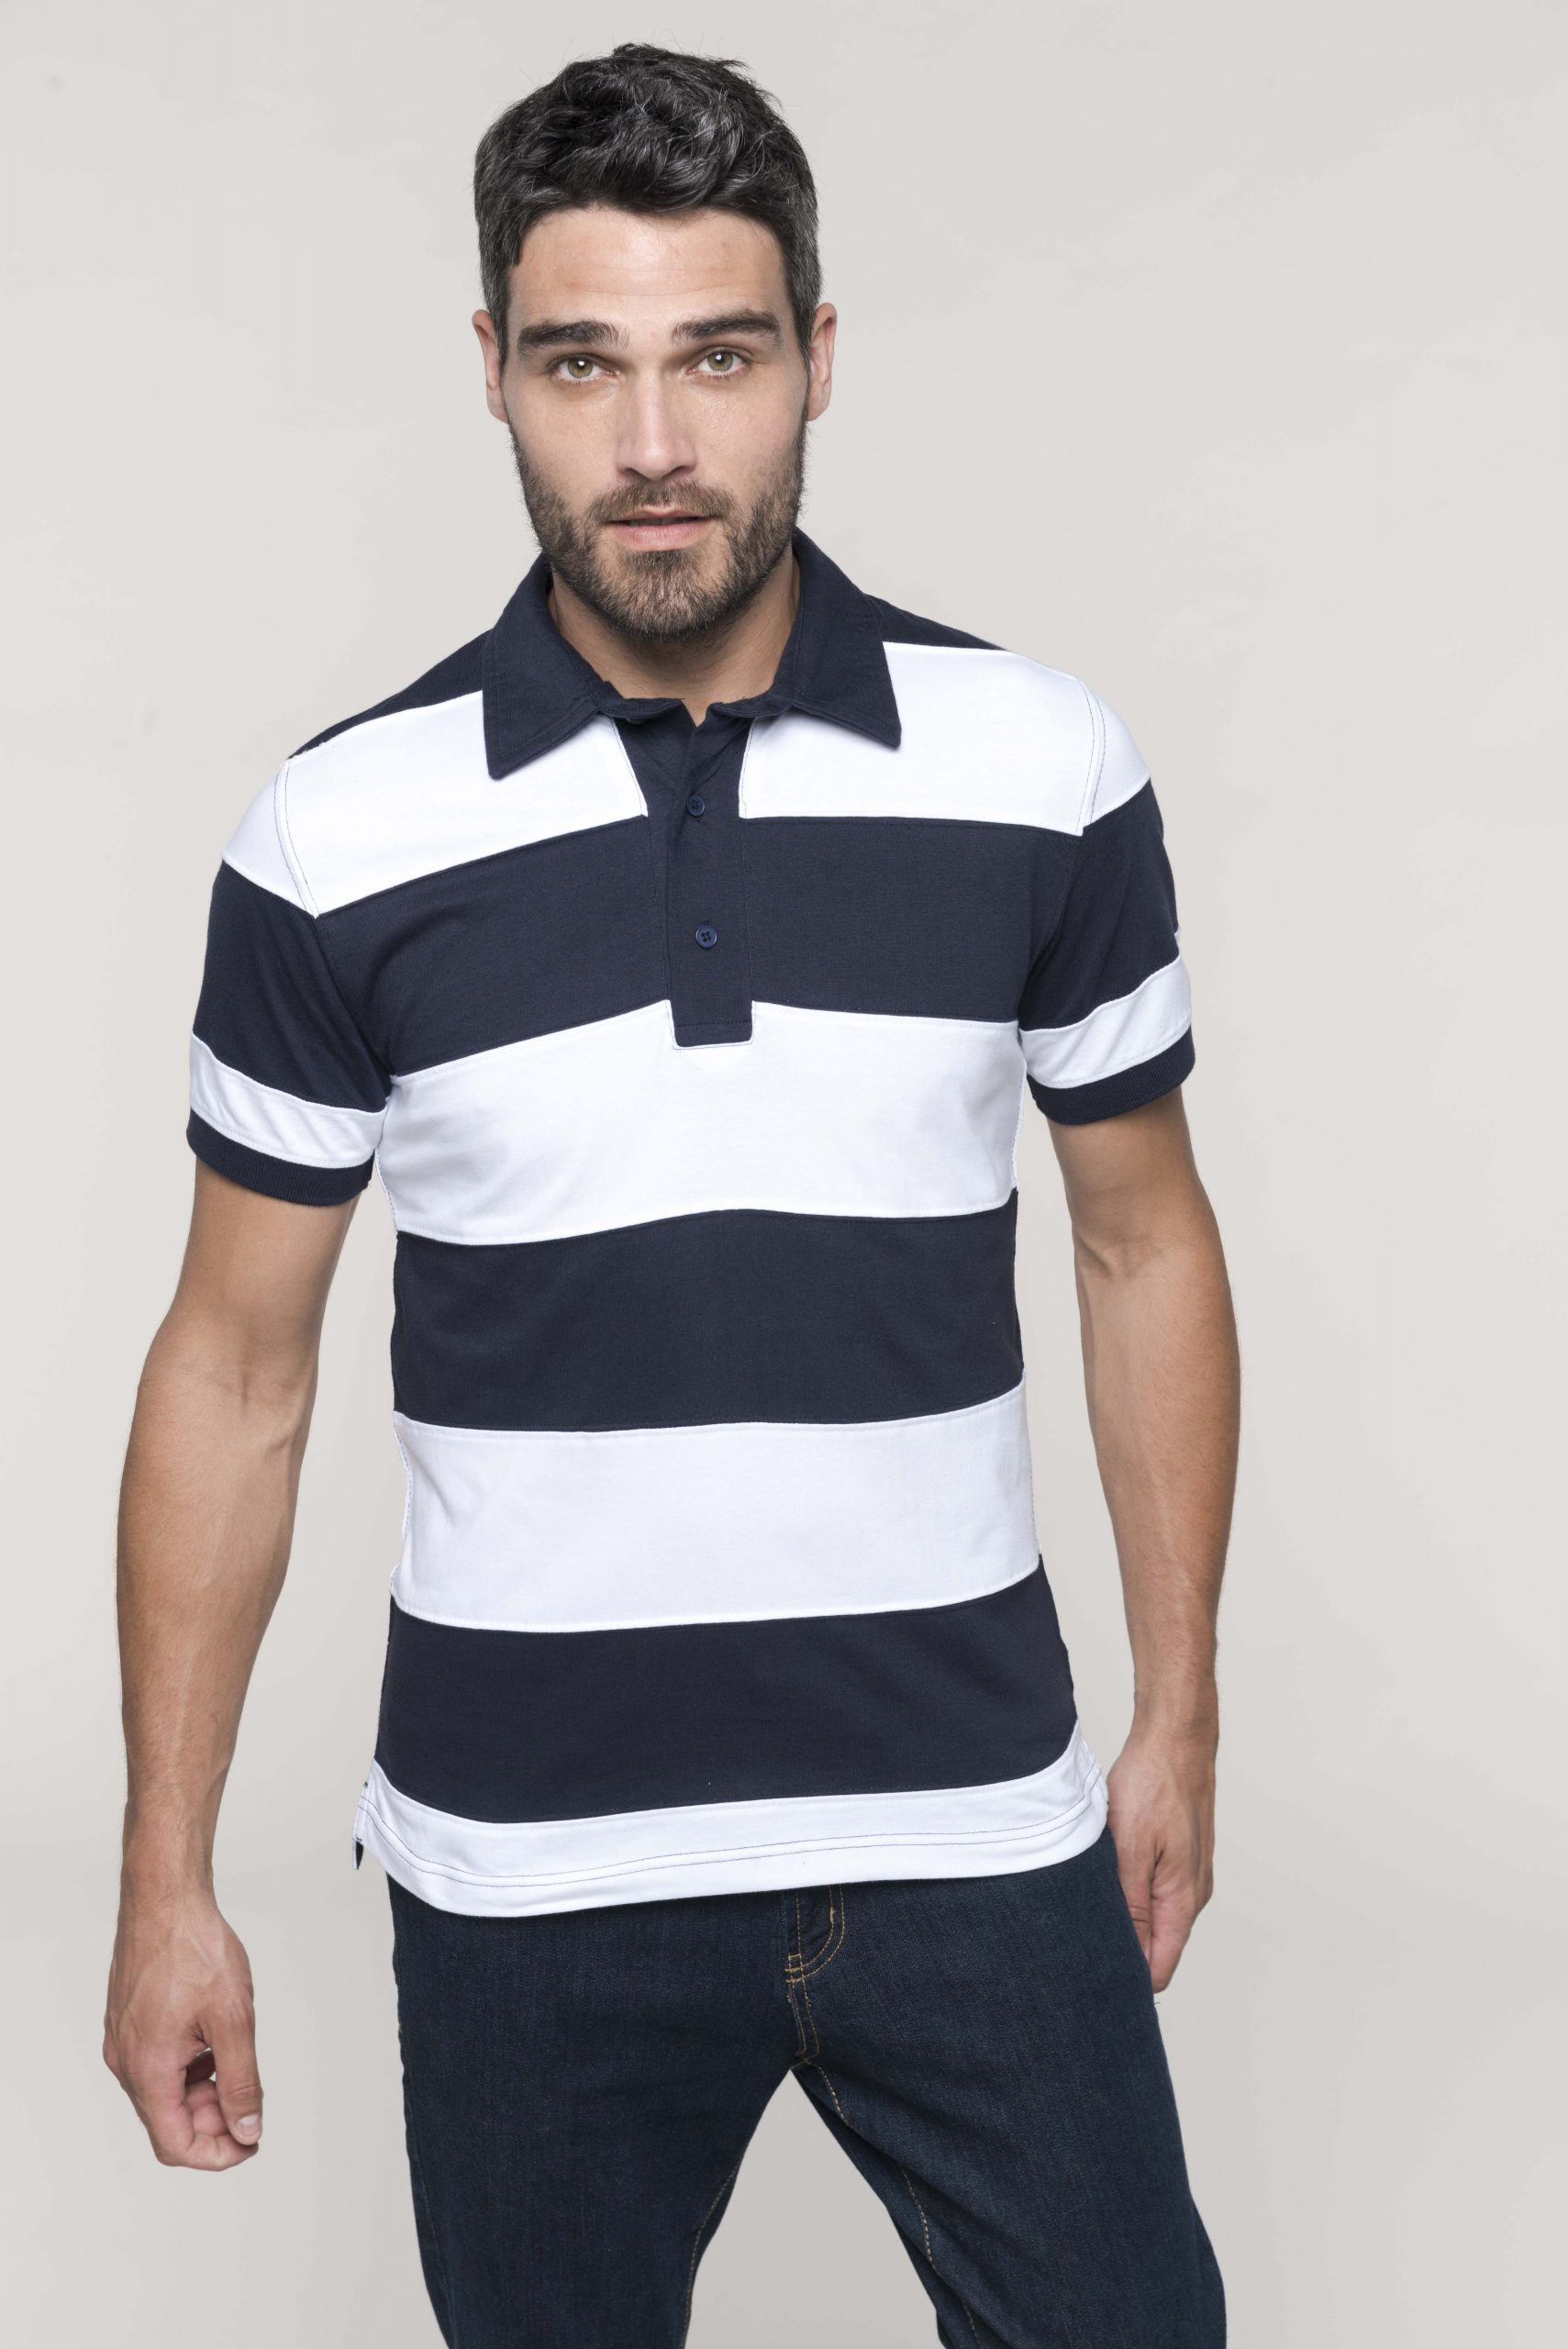 Ray - Sewn Stripe Short Sleeve Polo Shirt Men